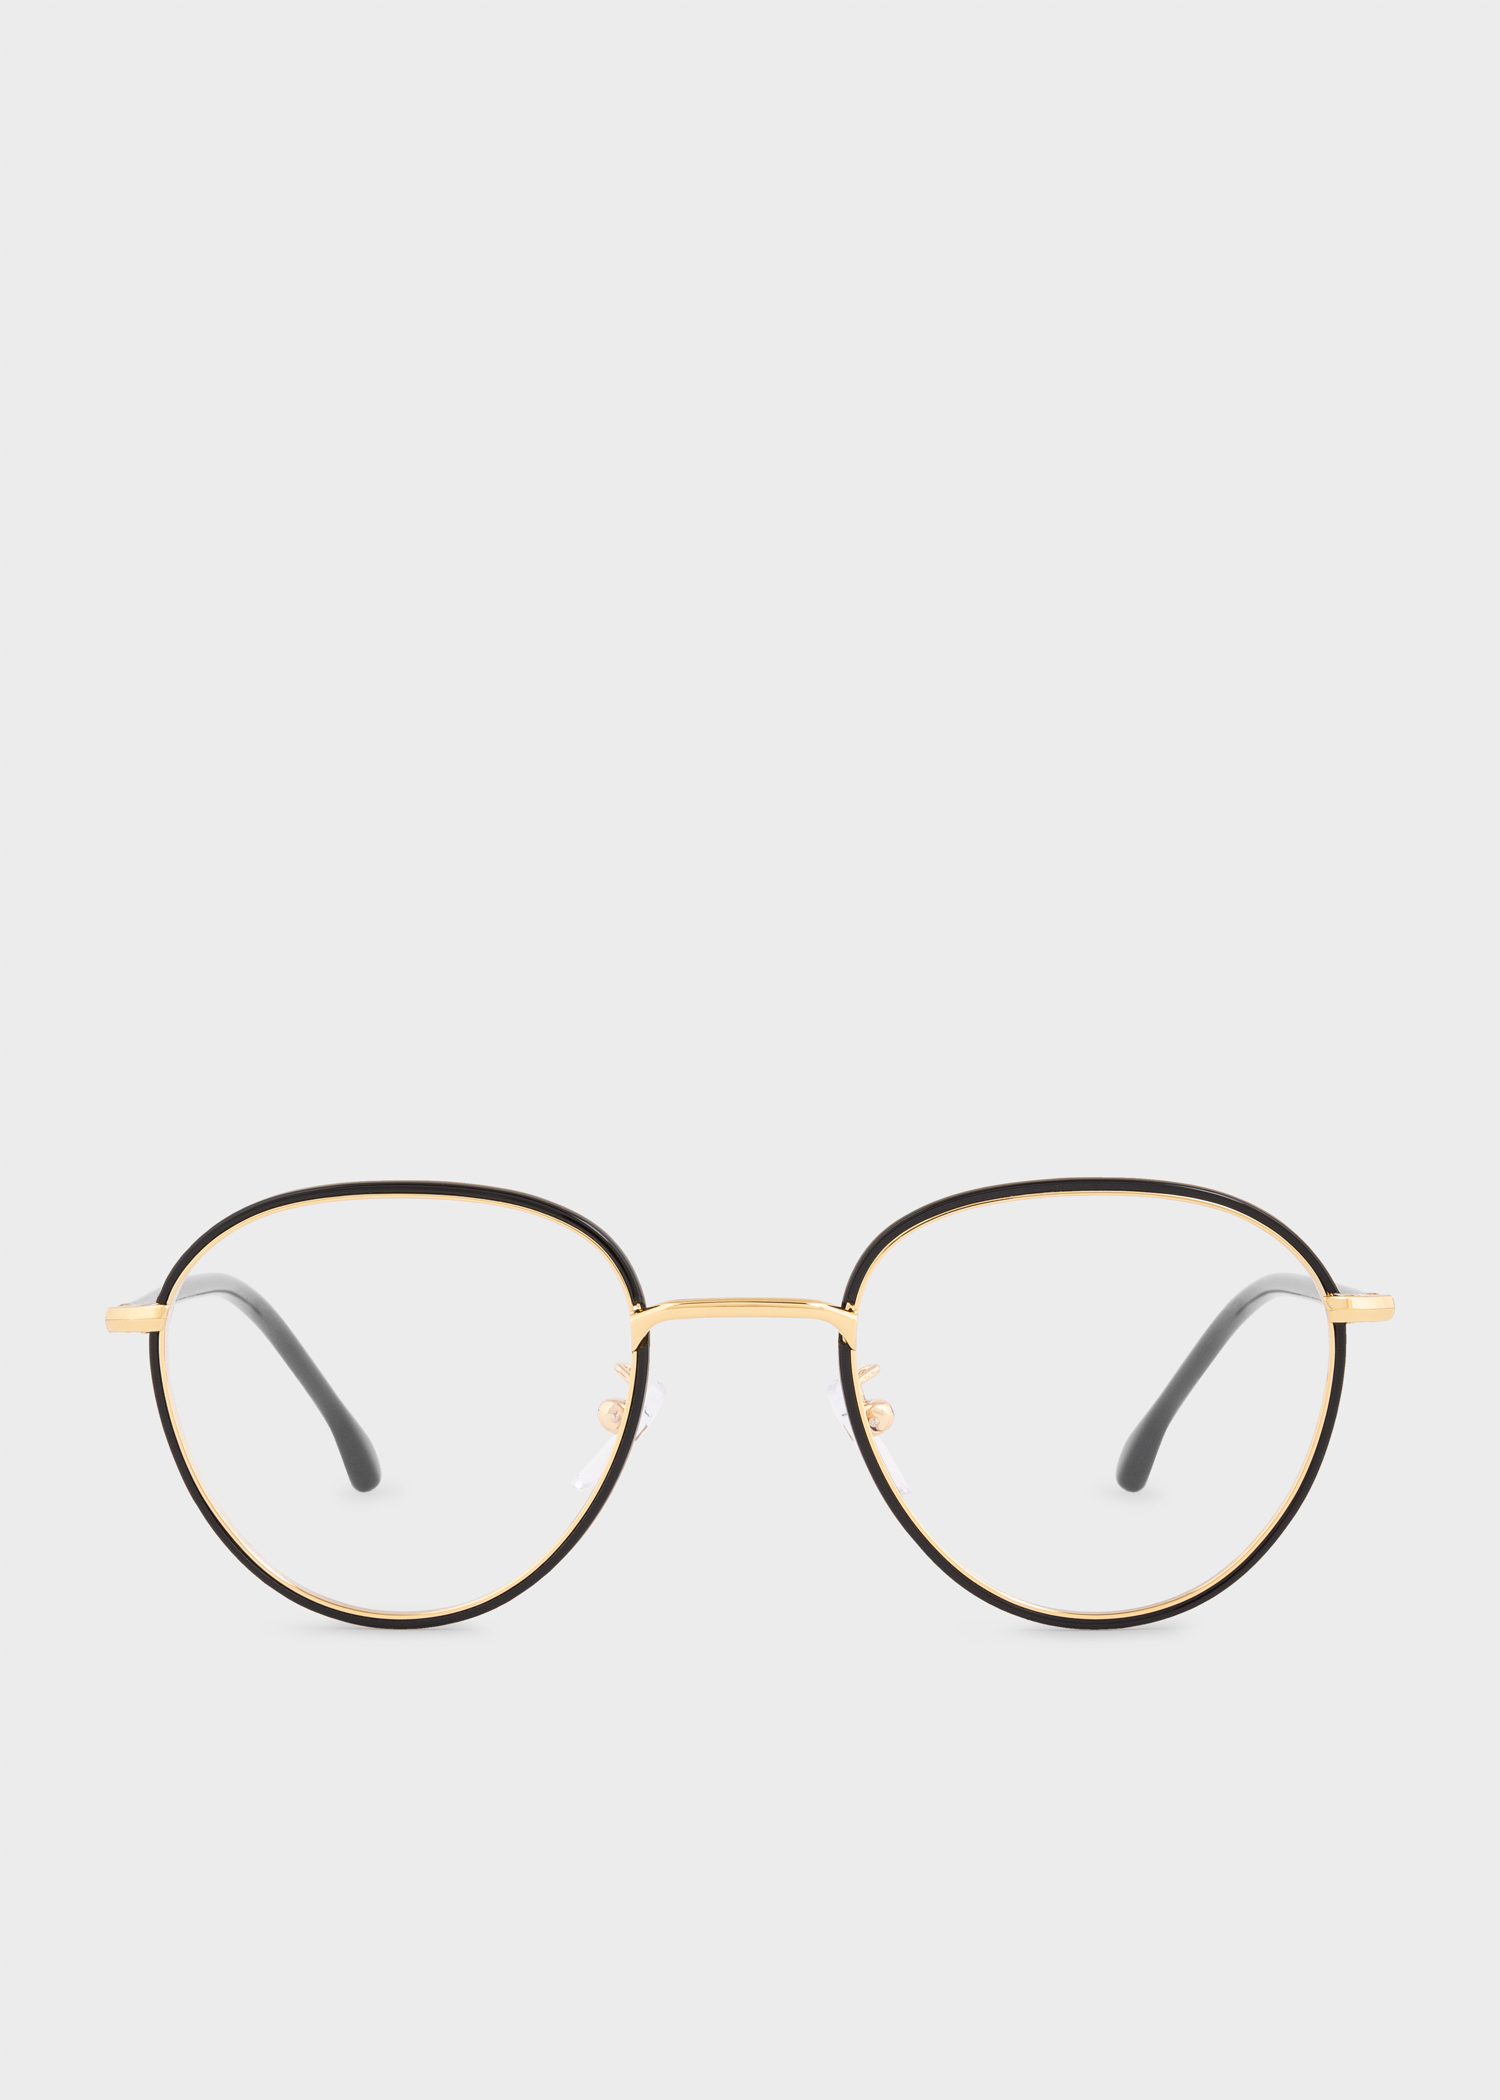 fb36f89585 Paul Smith Black Ink And Gold  Albion  Spectacles - Paul Smith Asia